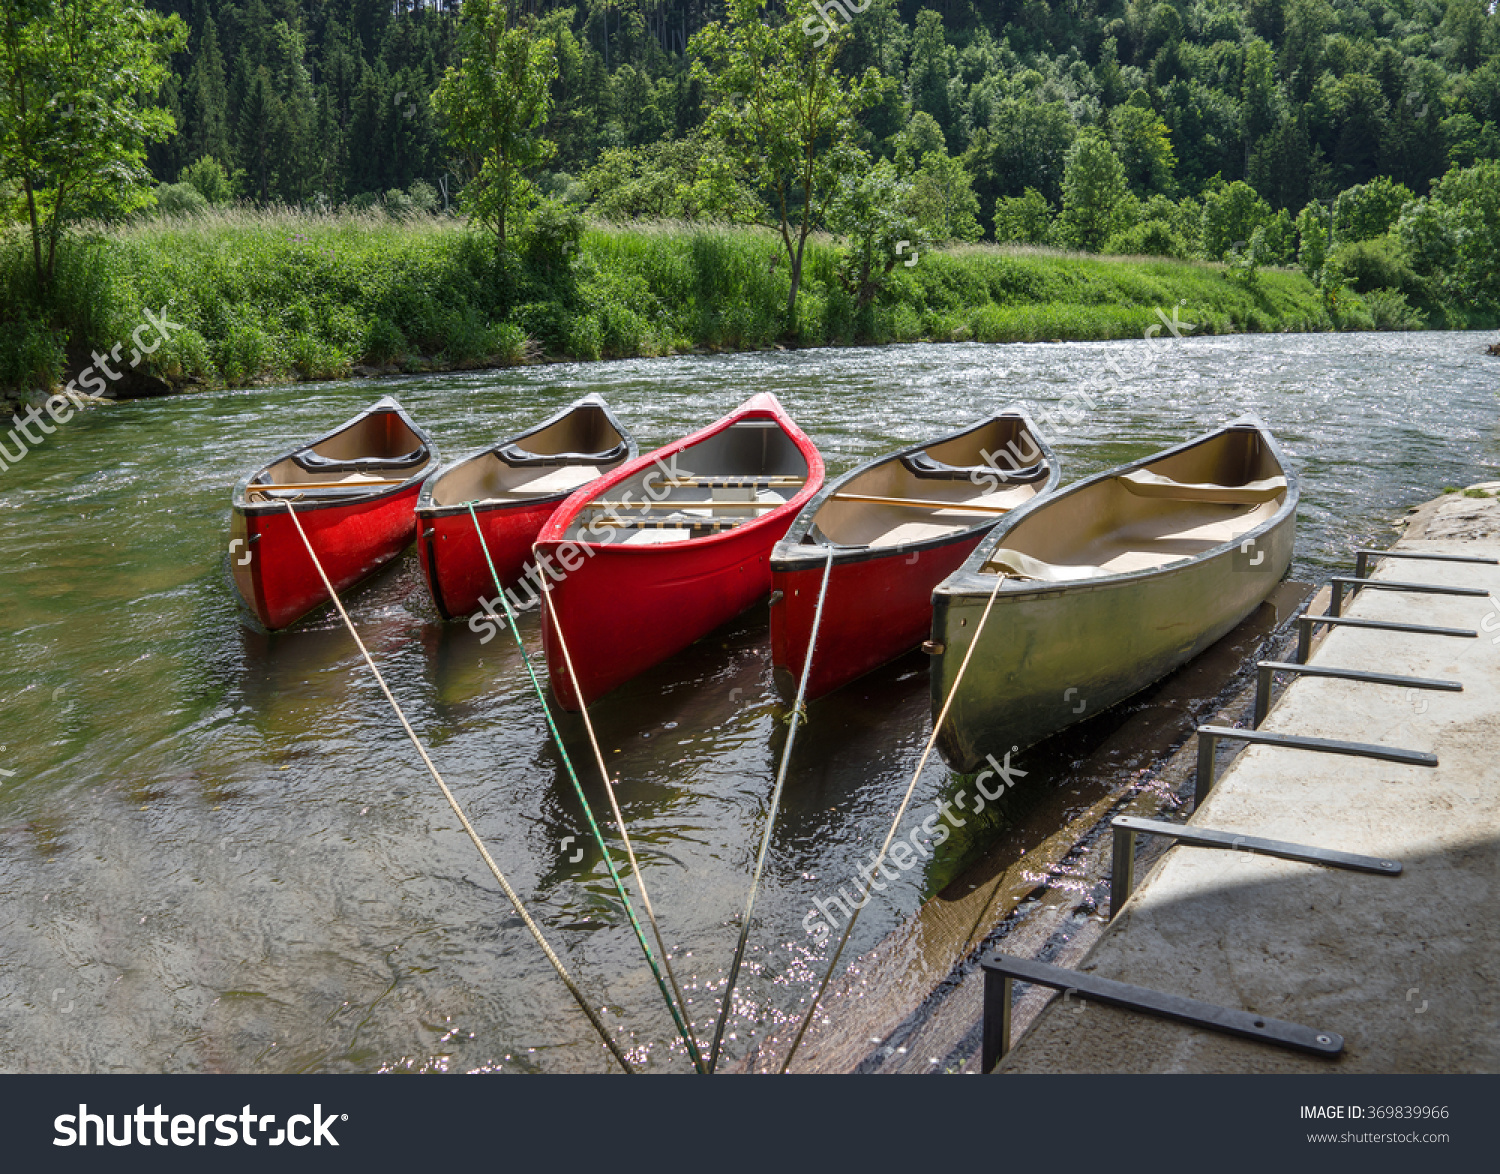 Five Tied, Empty Canoes Lie In A Row Next To Each Other In A River.